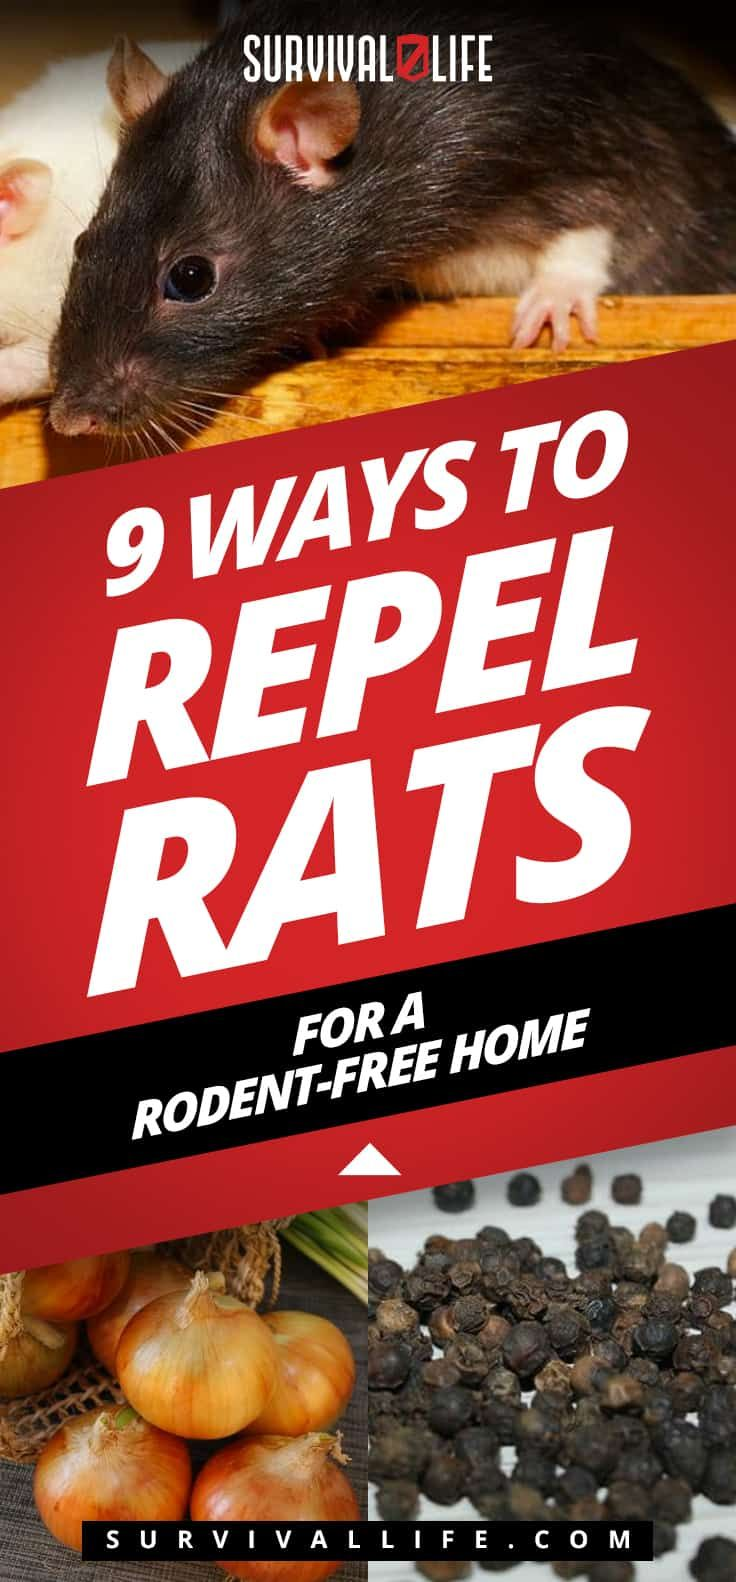 9 Ways To Repel Rats For A Rodent-Free Home | Rodents ...